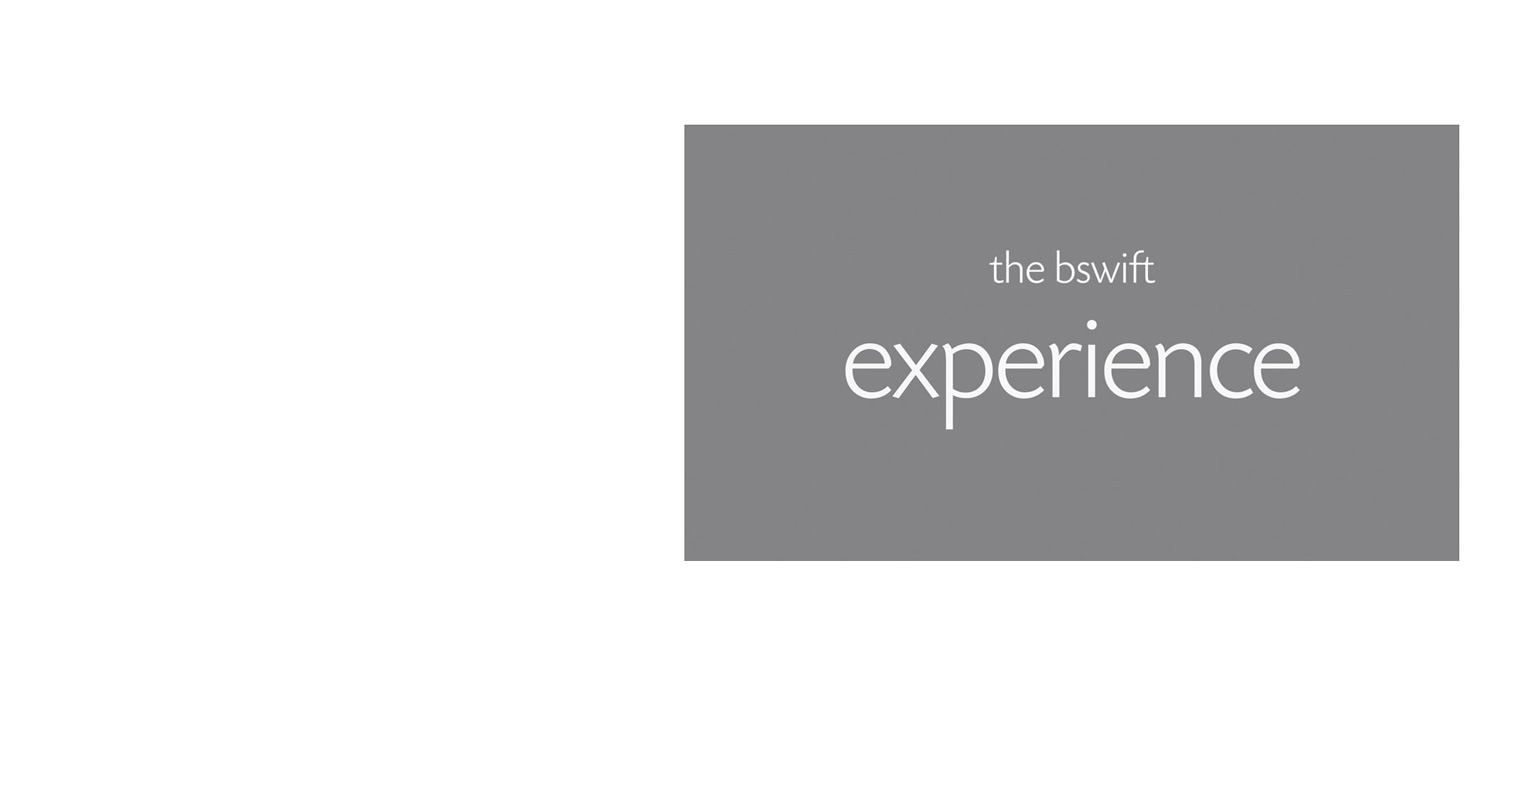 Video still with the words: the bswift experience